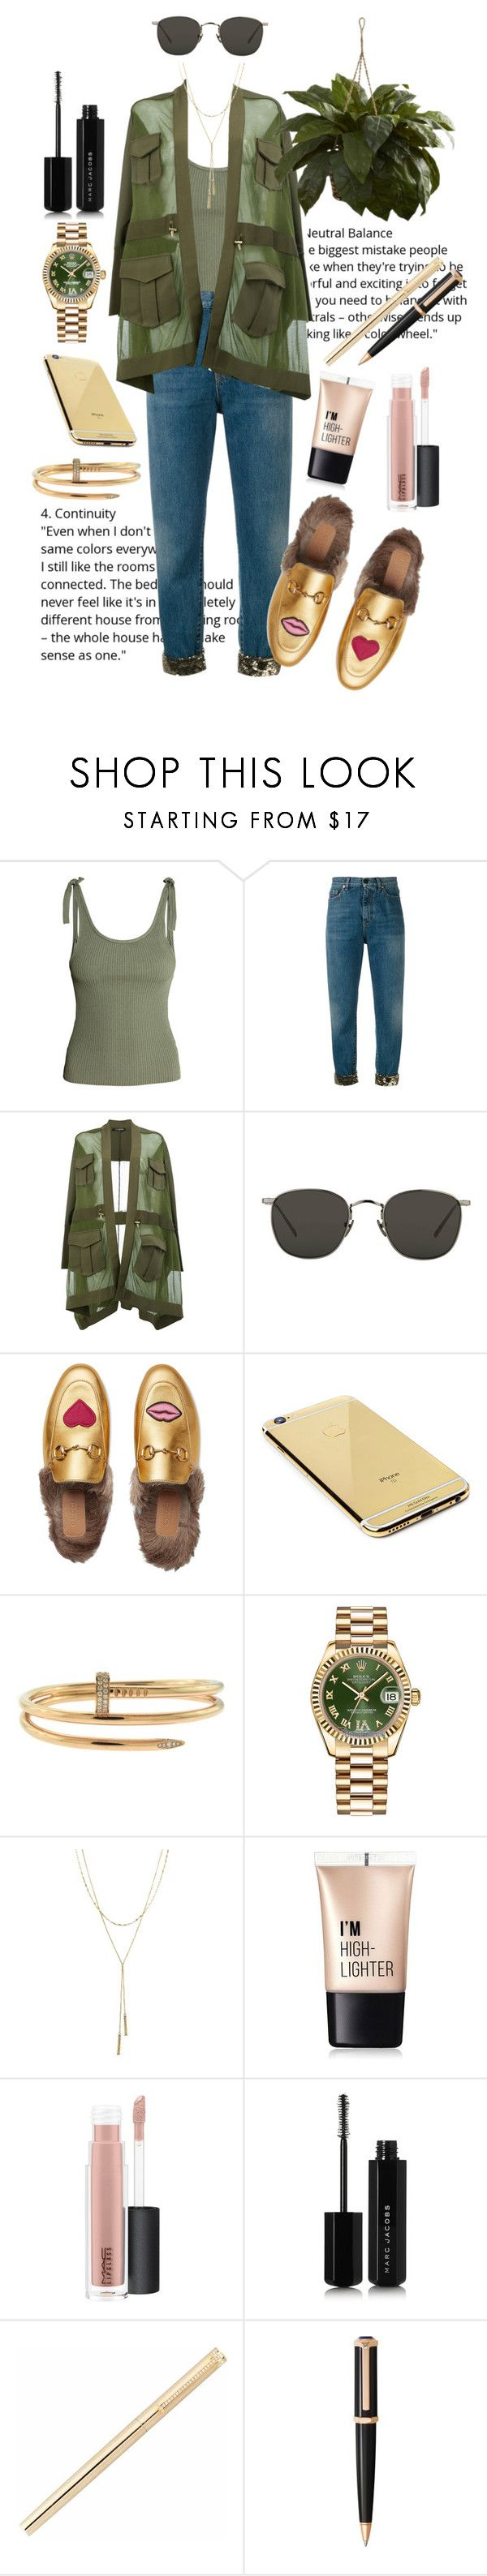 """""""When u're a big boss of f1"""" by alishaalisha ❤ liked on Polyvore featuring H&M, Yves Saint Laurent, Balmain, Linda Farrow, Gucci, Goldgenie, Cartier, Rolex, Bloomingdale's and Charlotte Russe"""